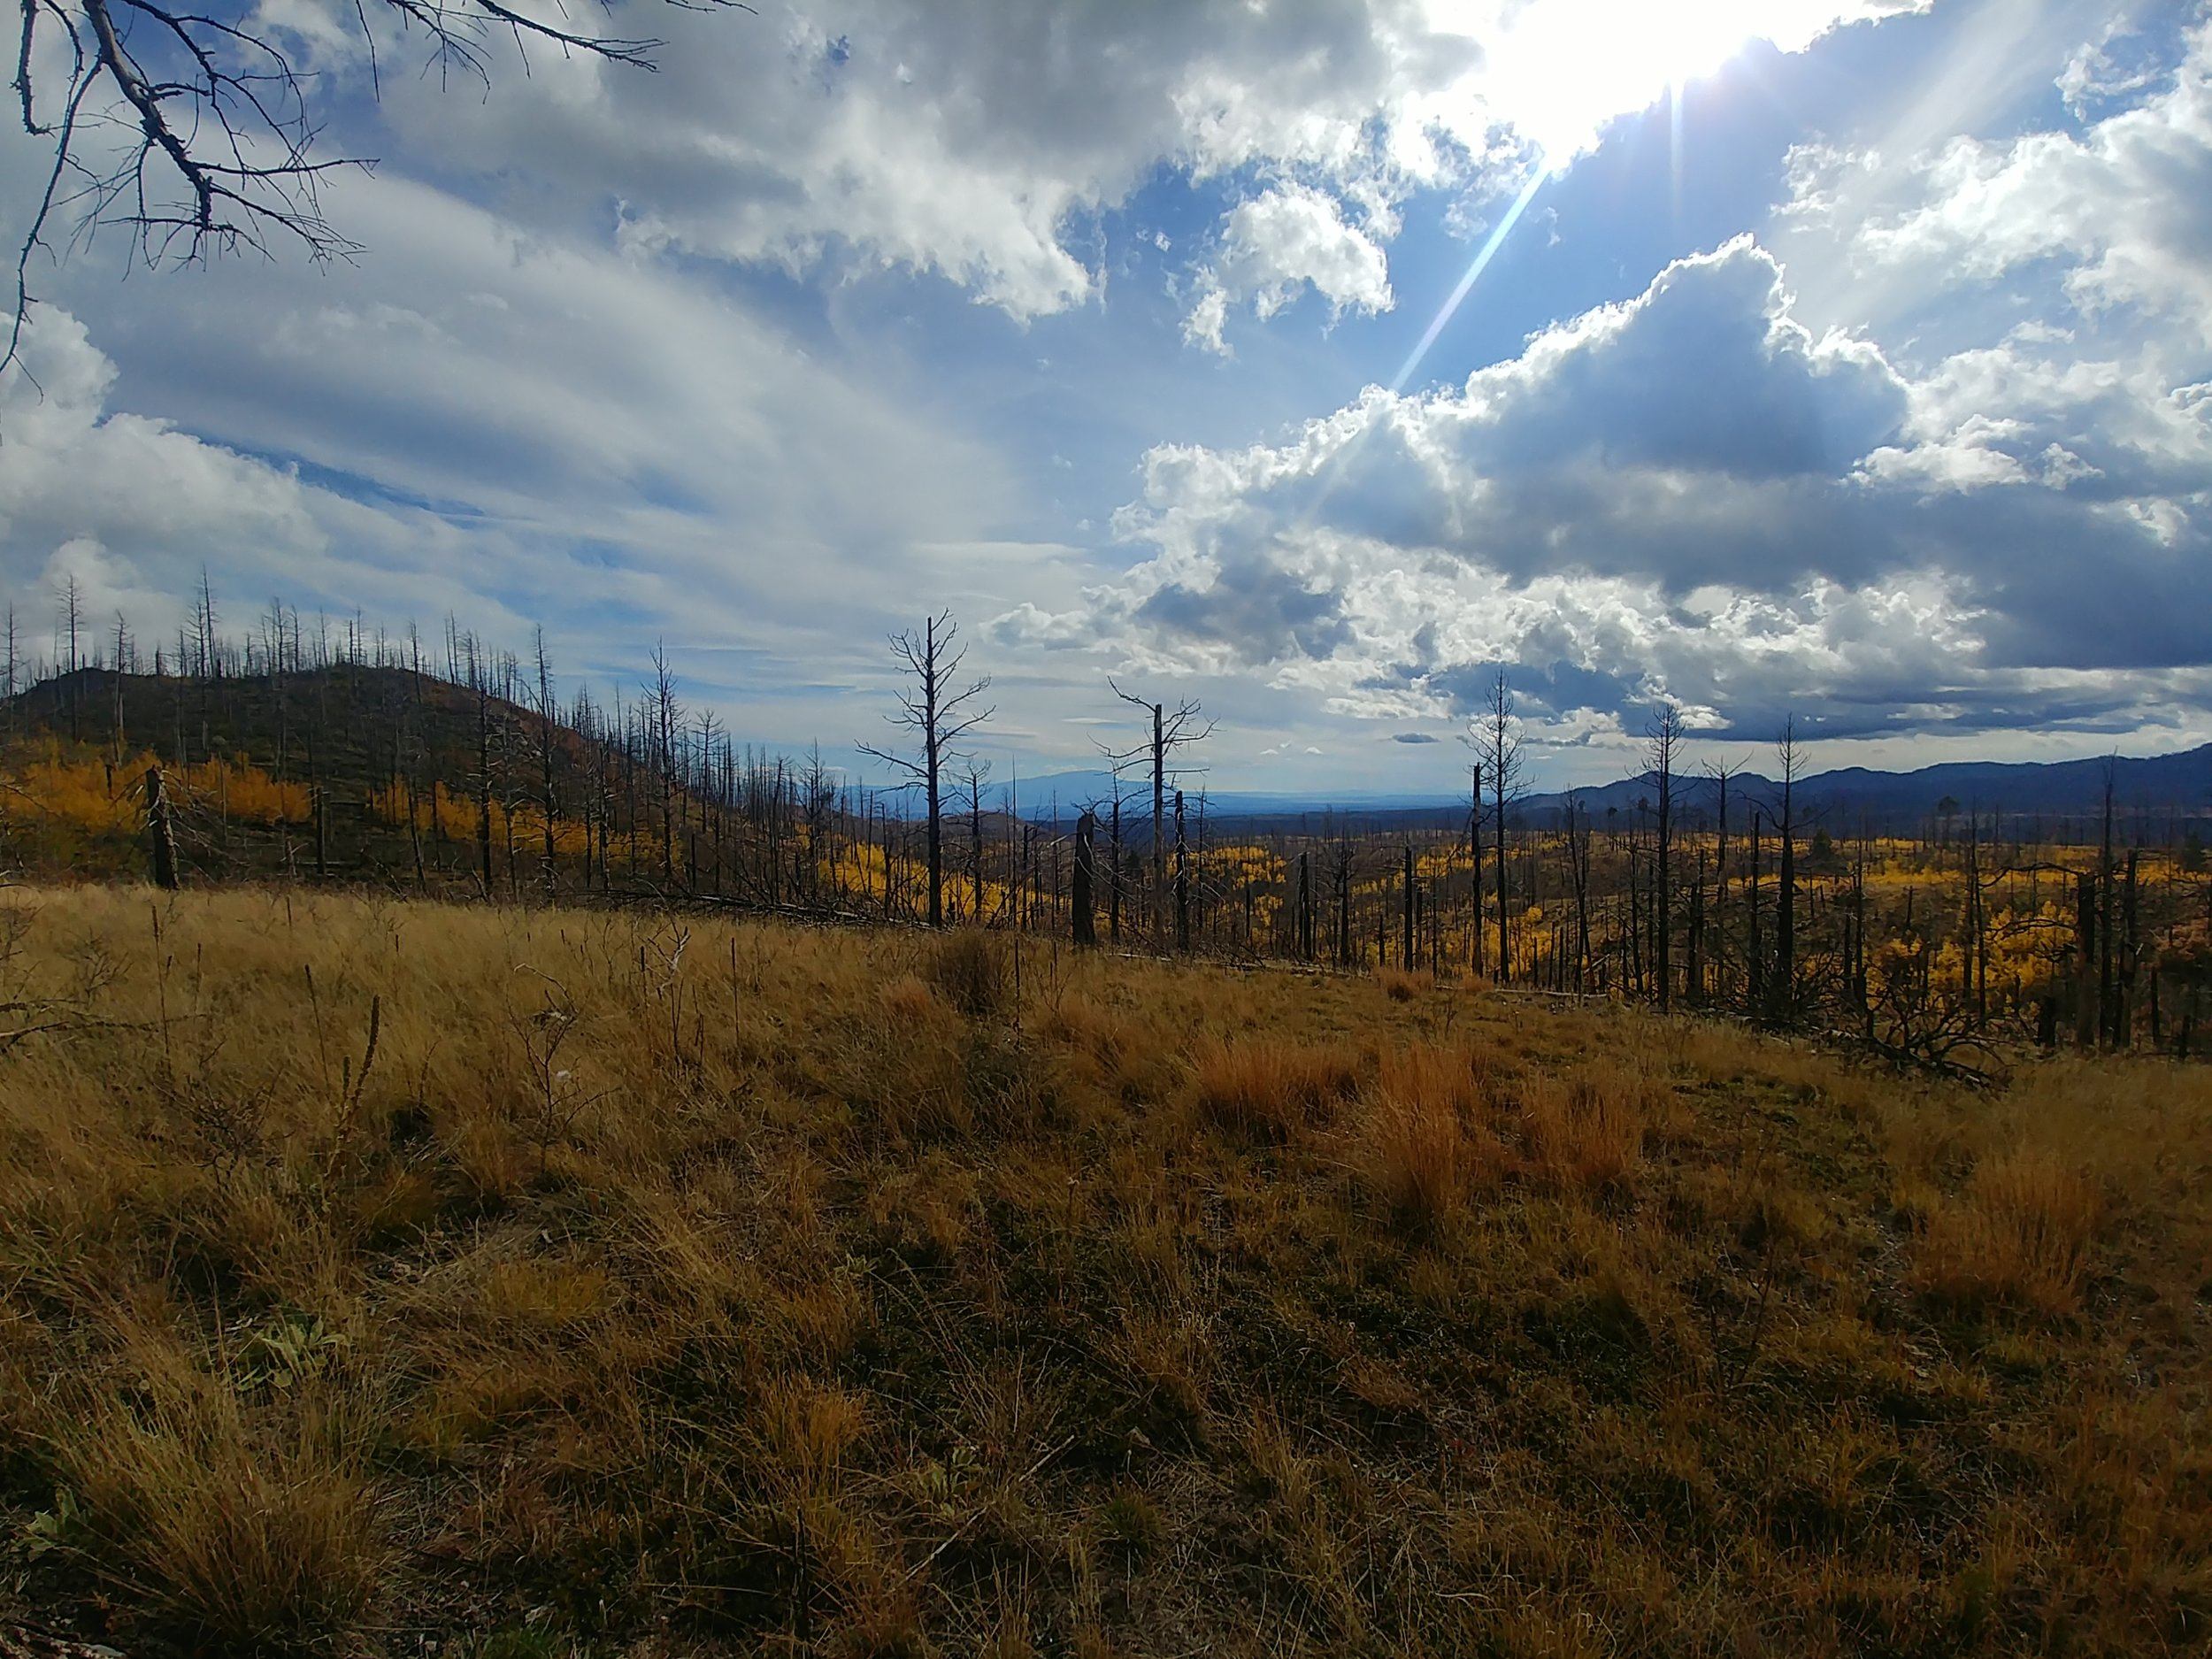 Some areas in the eastern Jemez Mountains have started to recover from the fires, others need may need some help. The EJLF project seeks to identify and address the areas that may need a jumpstart. Credit: Megan Heeres